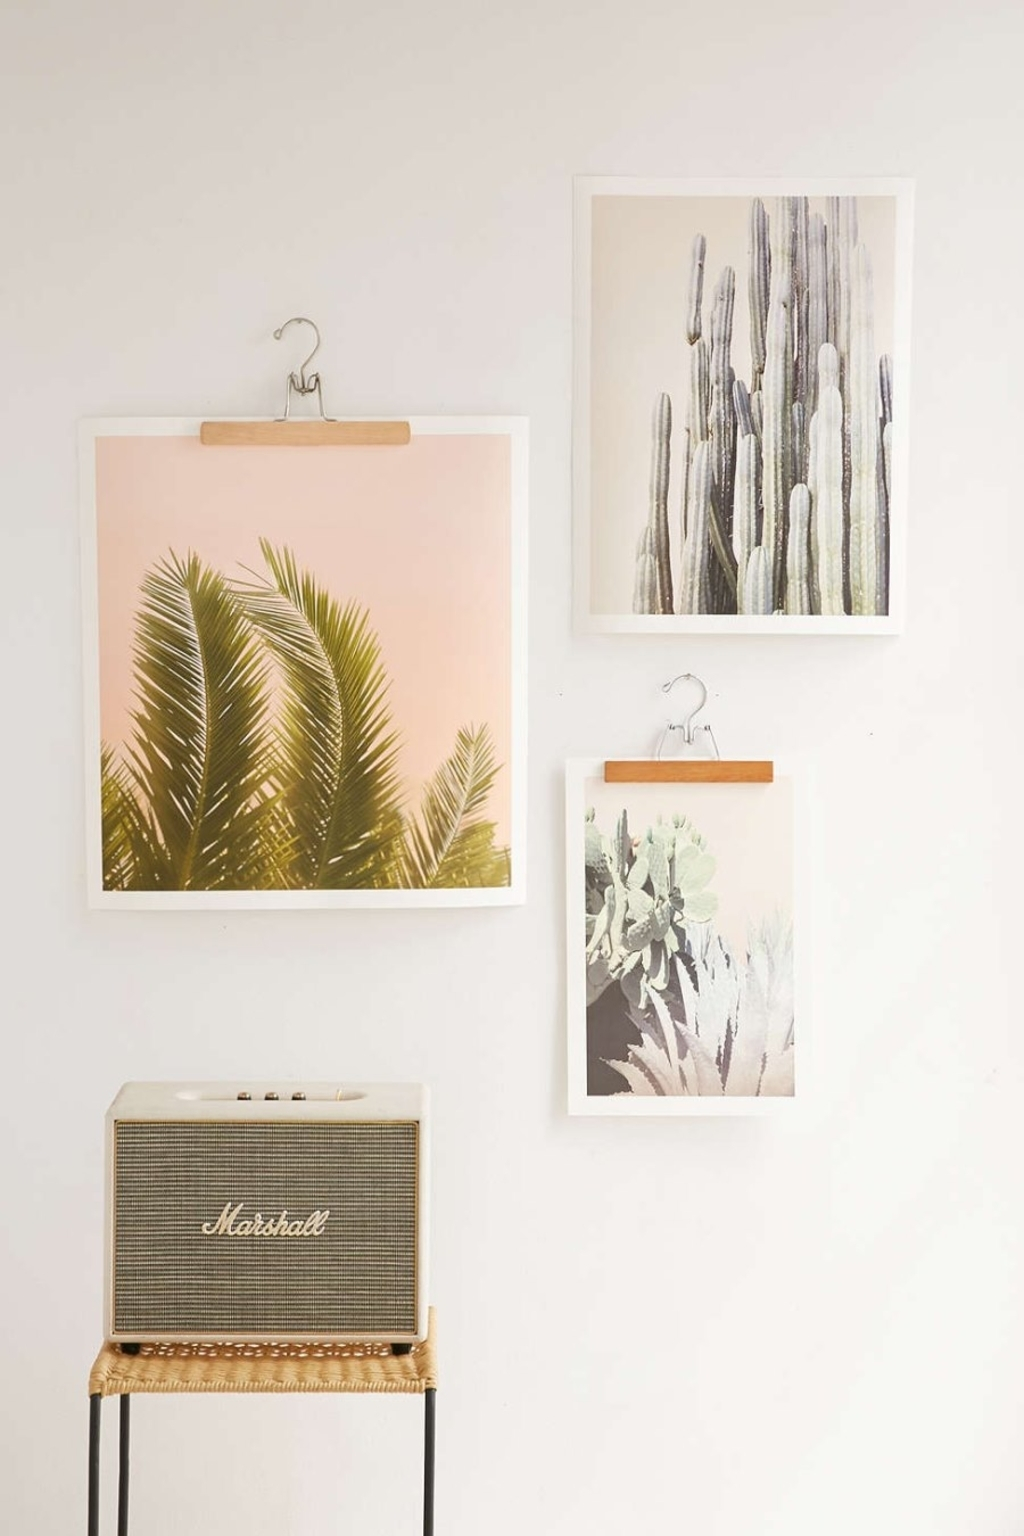 Valuable Urban Outfitters Wall Art Interior Decorating Design Ideas Intended For 2018 Urban Outfitters Wall Art (View 2 of 20)